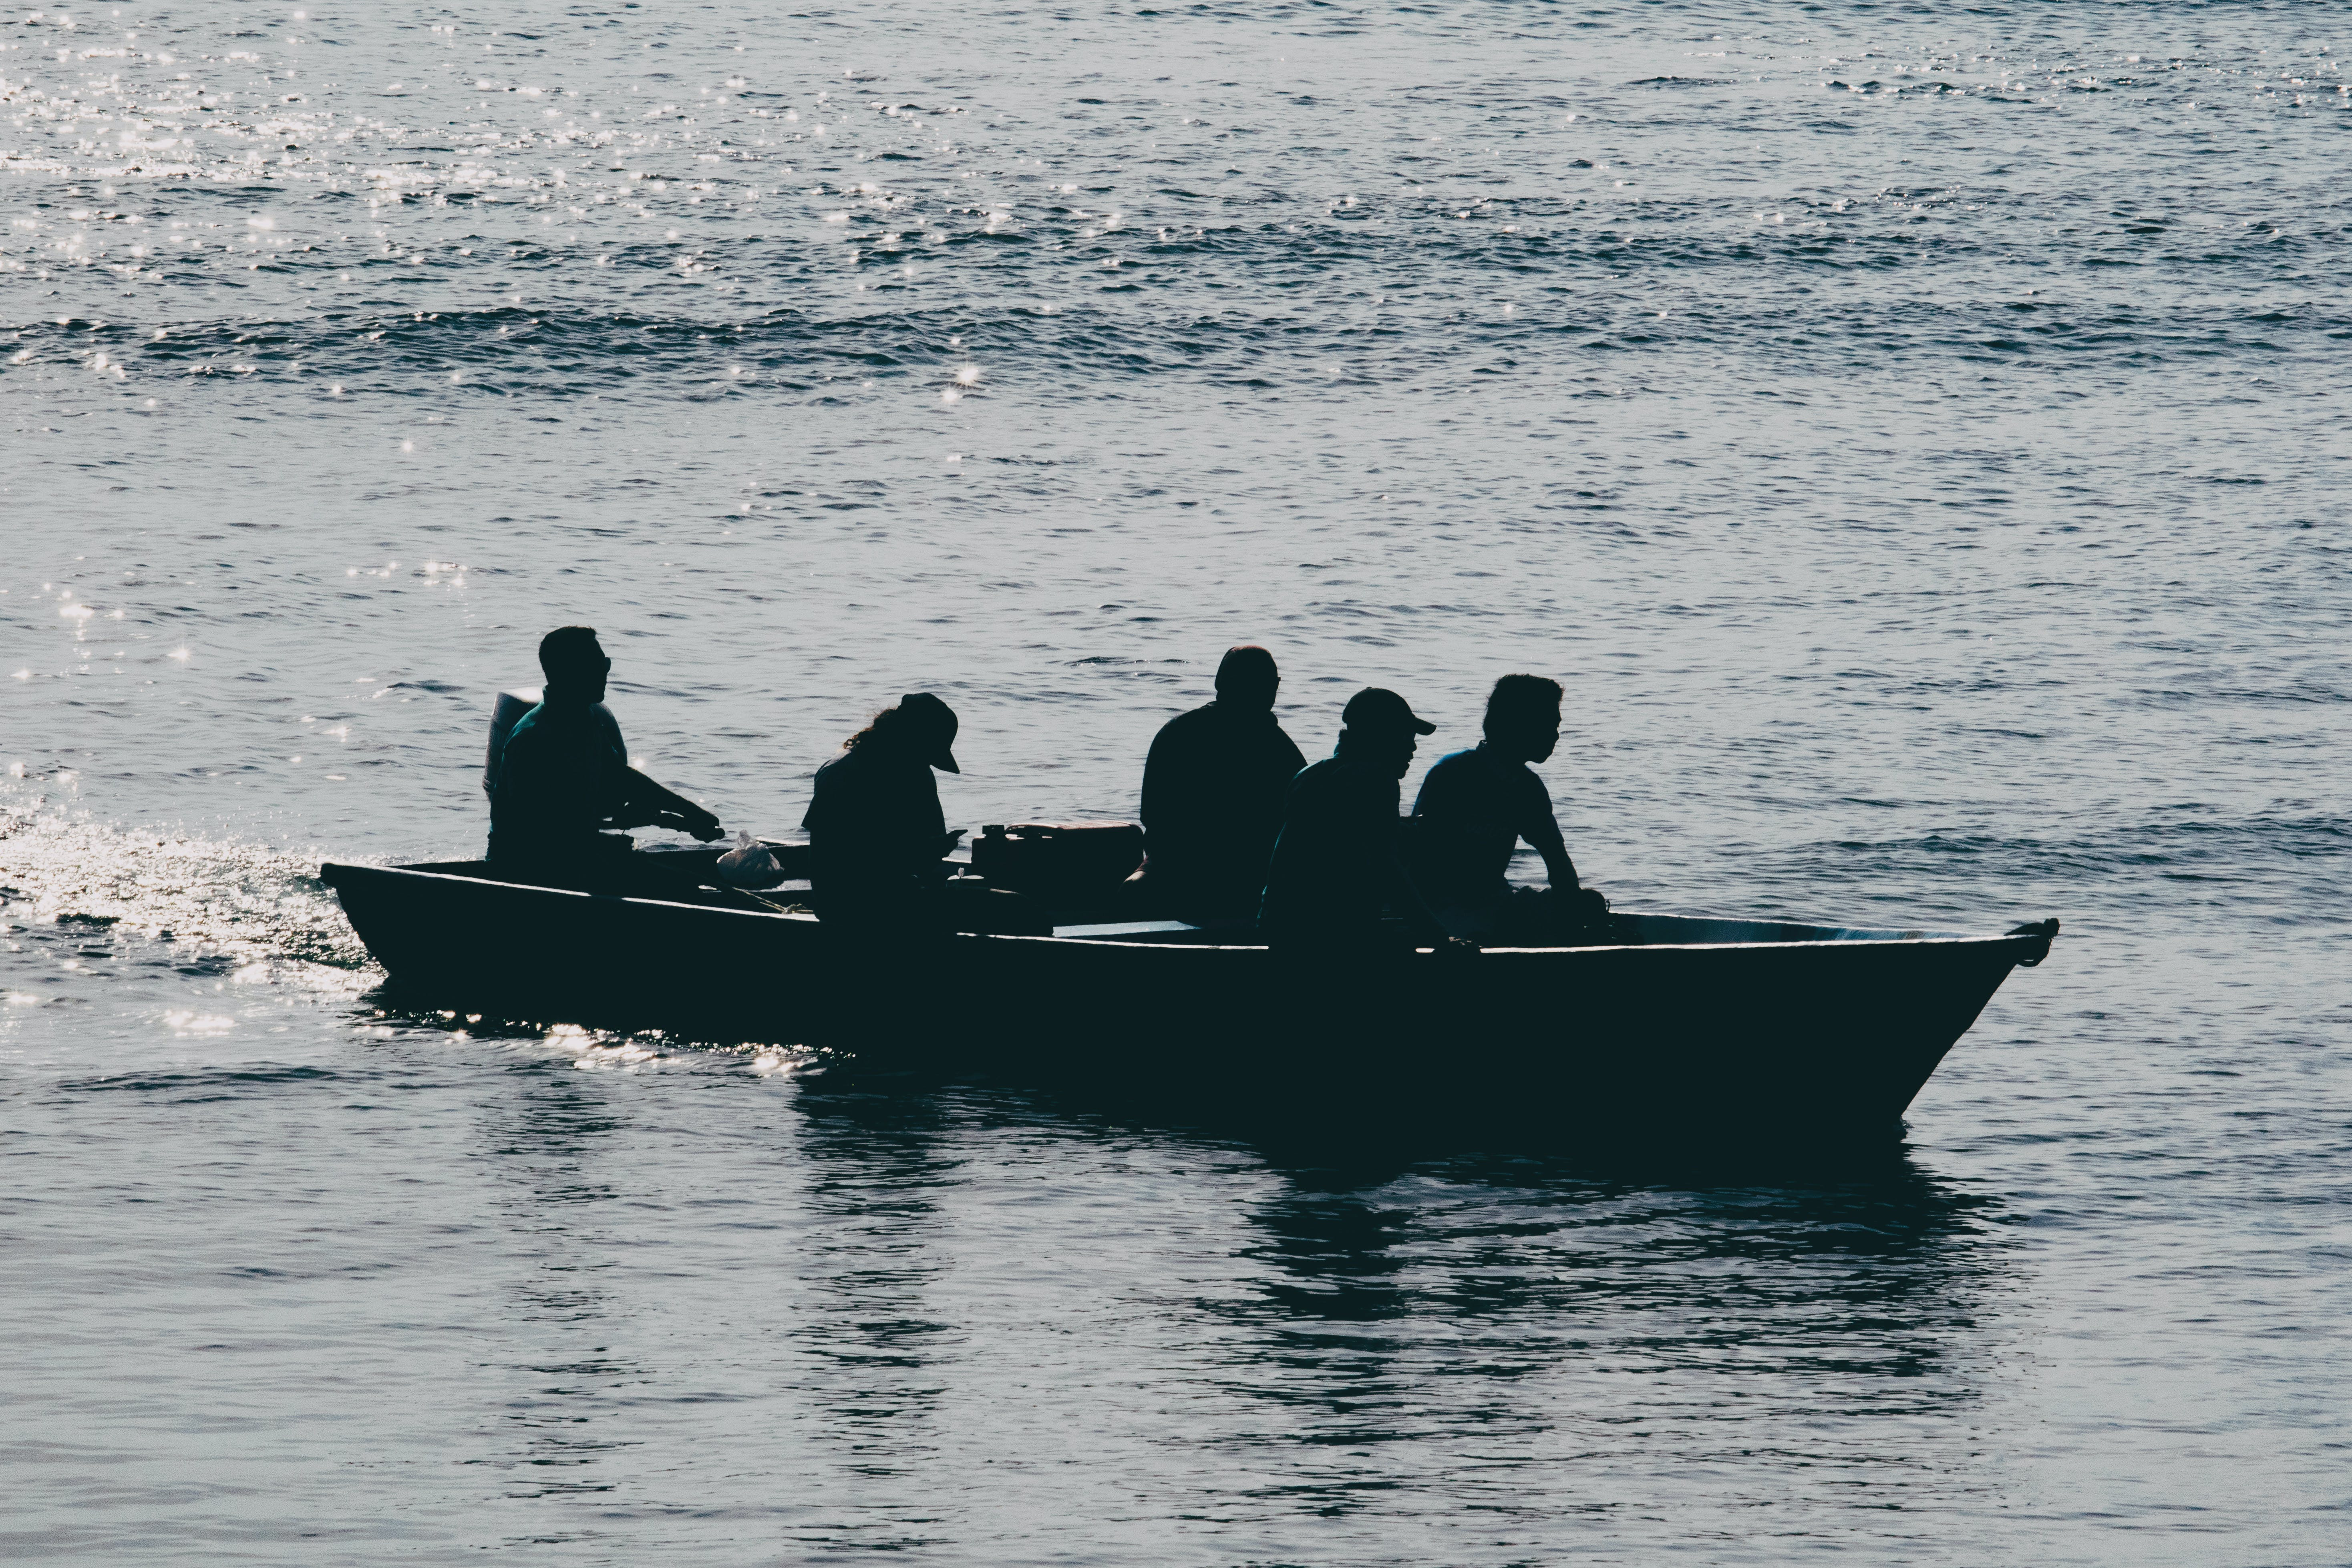 Free stock photo of silhouette of peoples on a boat